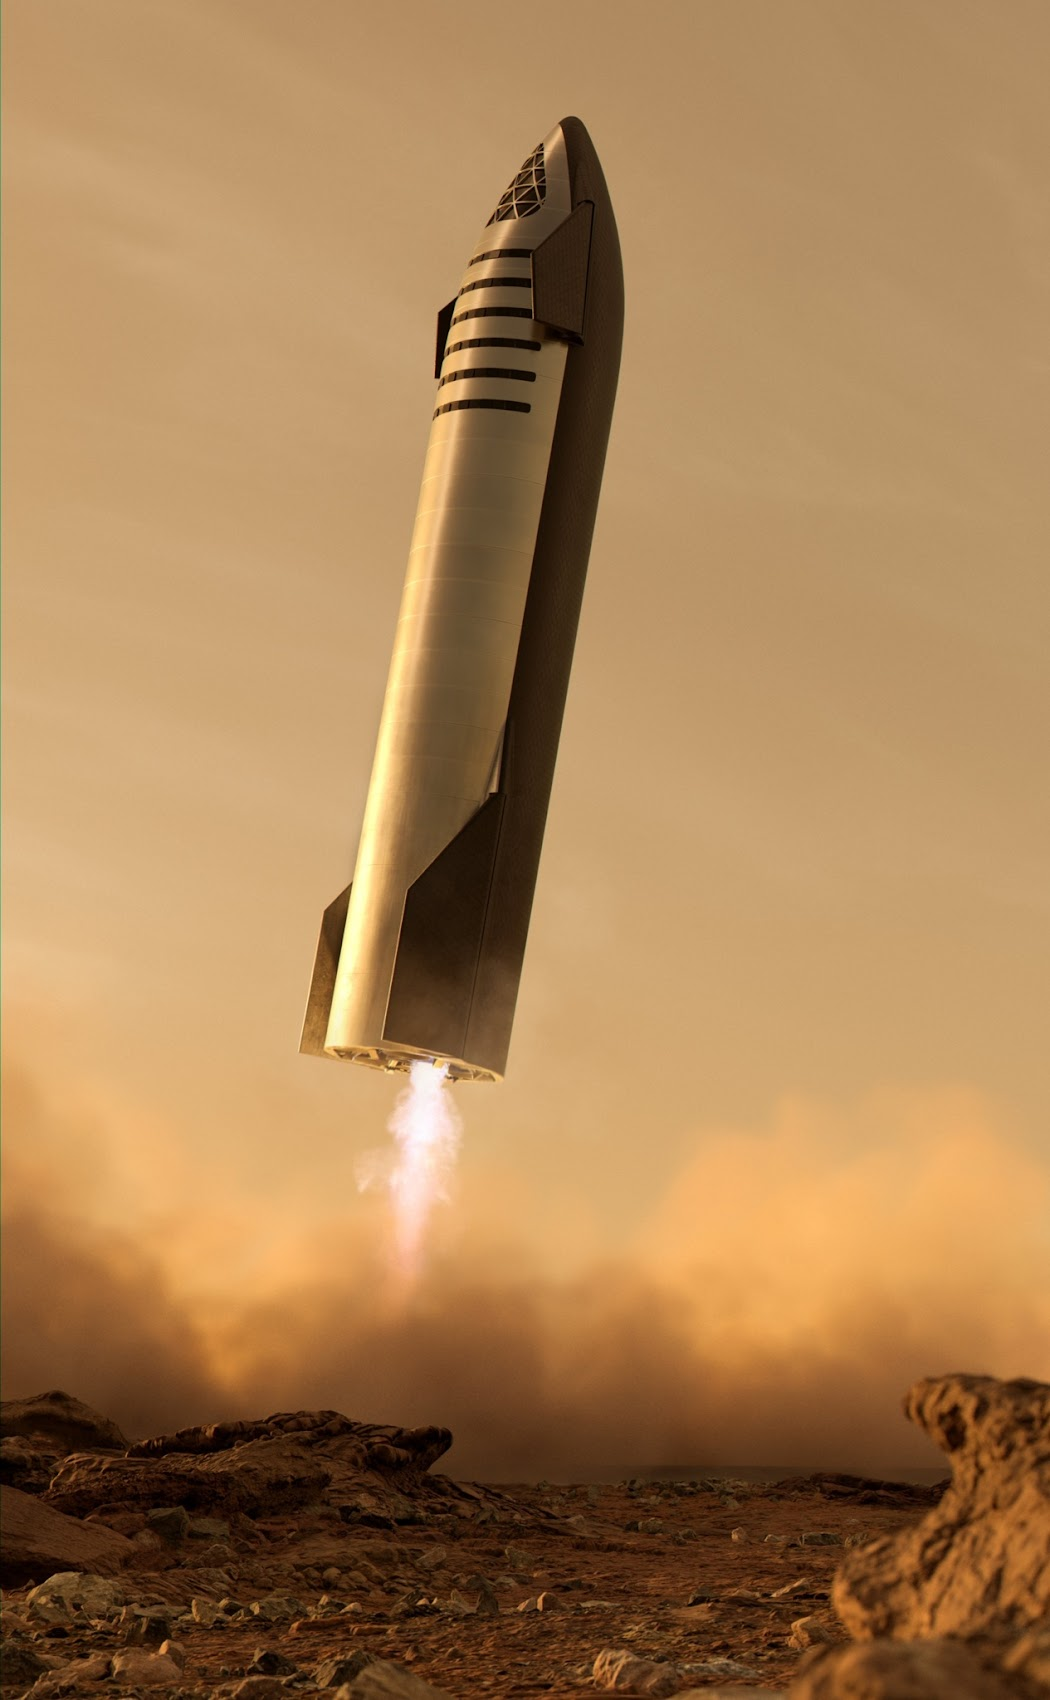 SpaceX's Starship landing on Mars by Kendall Dirks